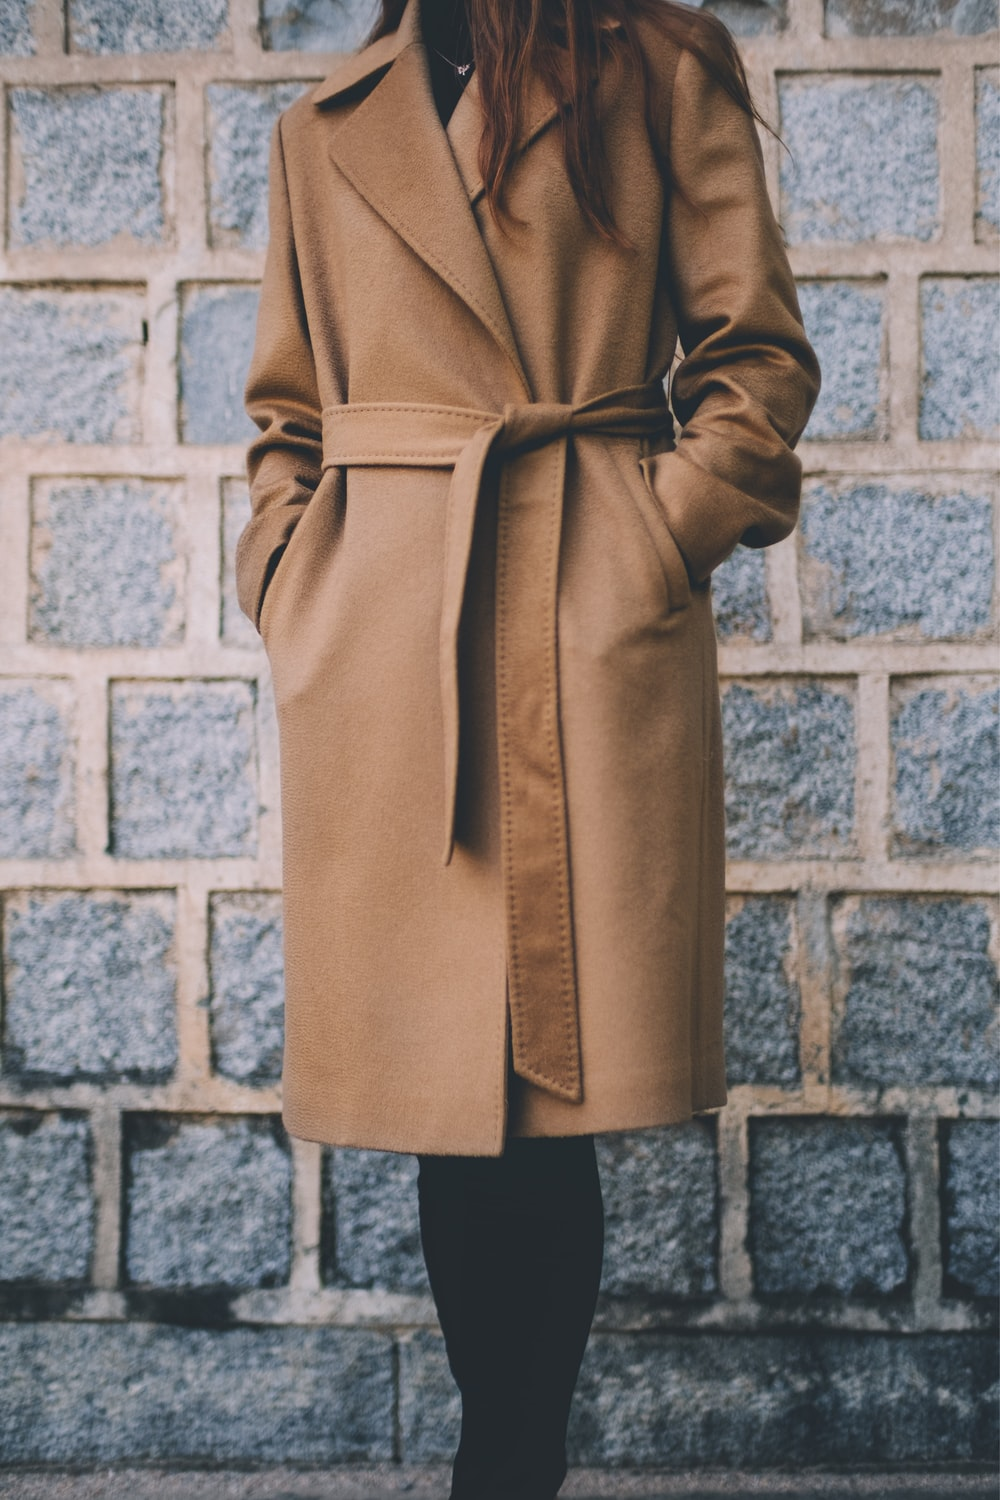 woman wearing brown single-breasted coat standing in front of gray brick wall